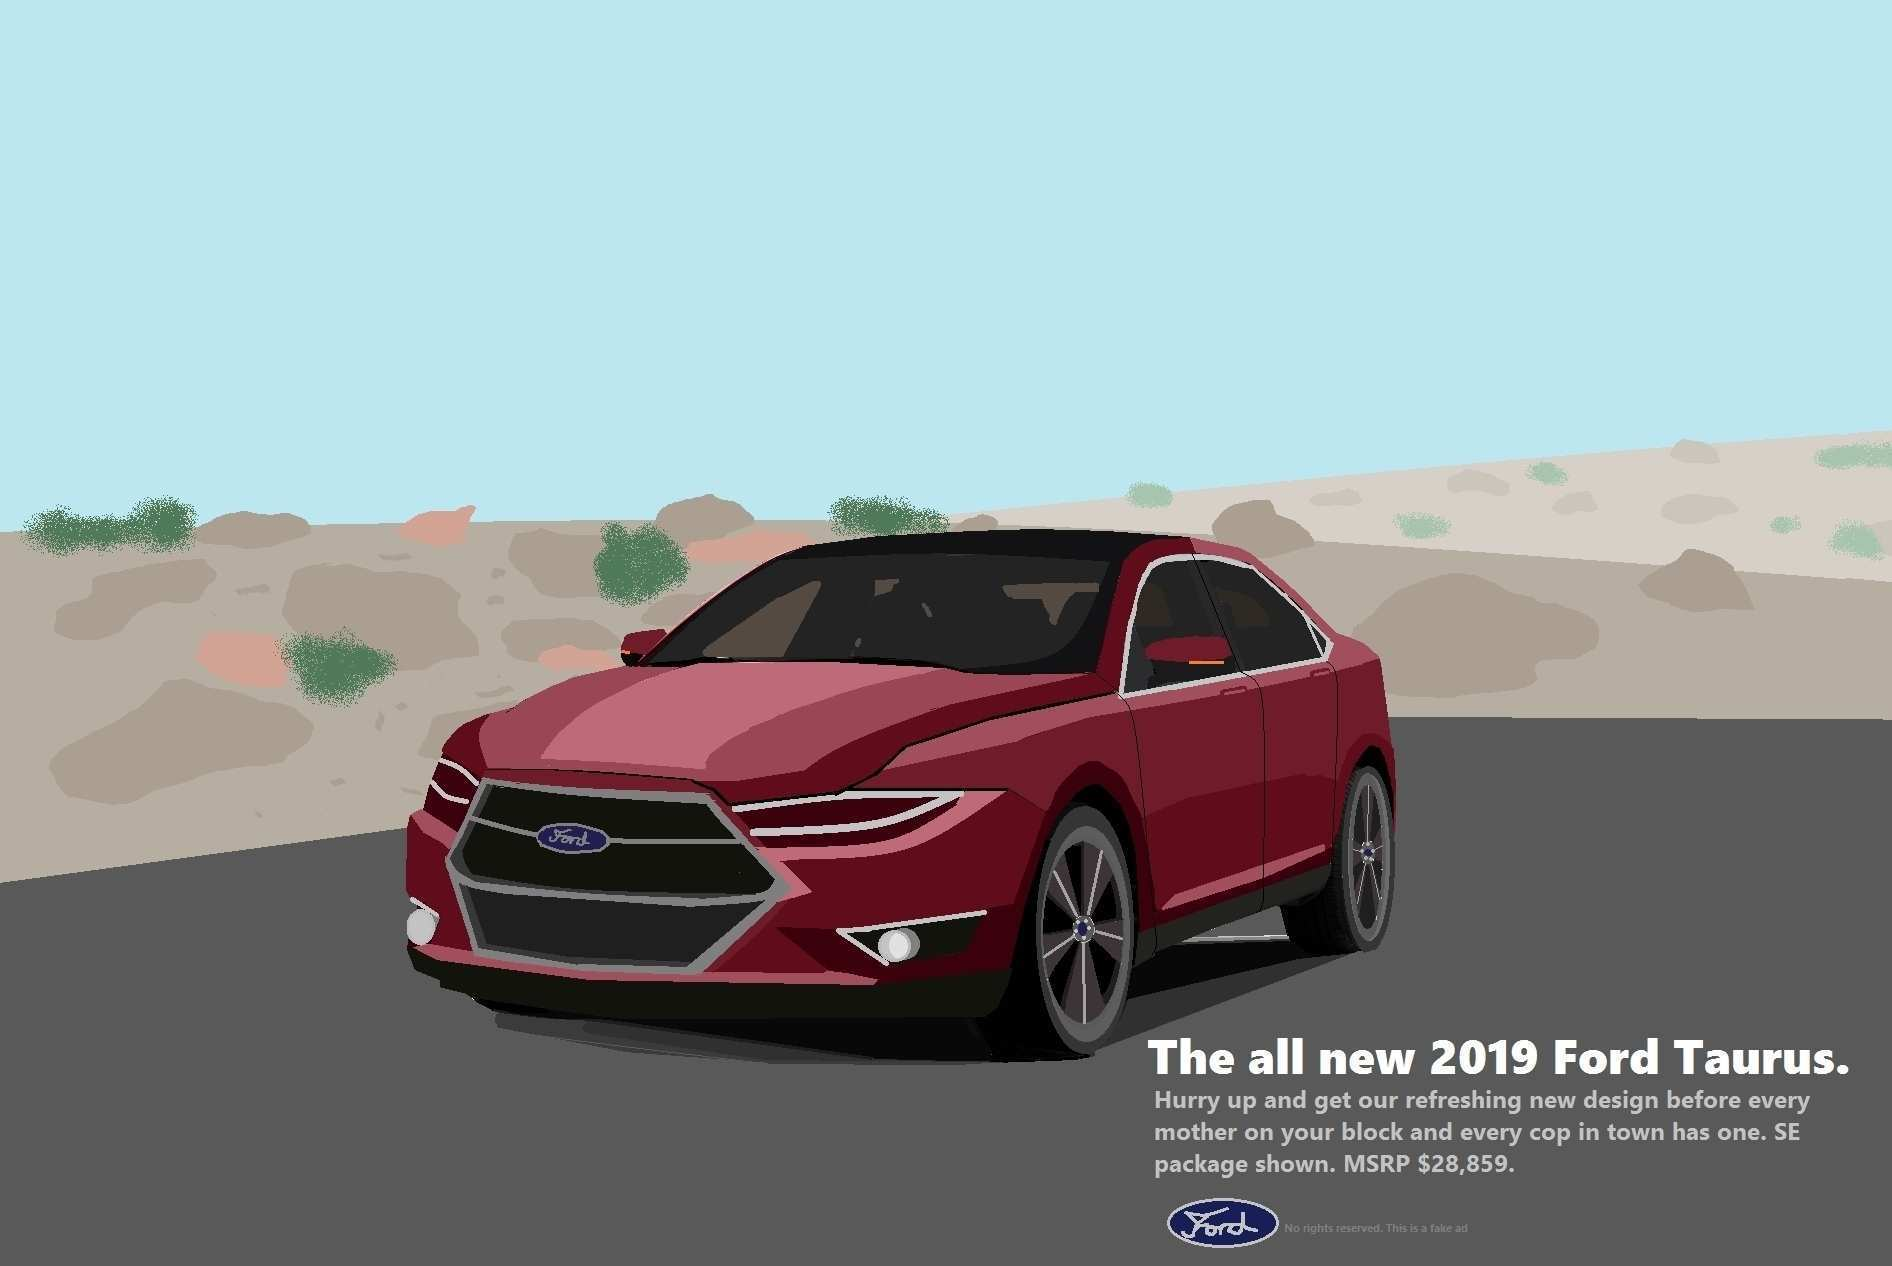 57 All New 2019 Ford Taurus Spy Picture